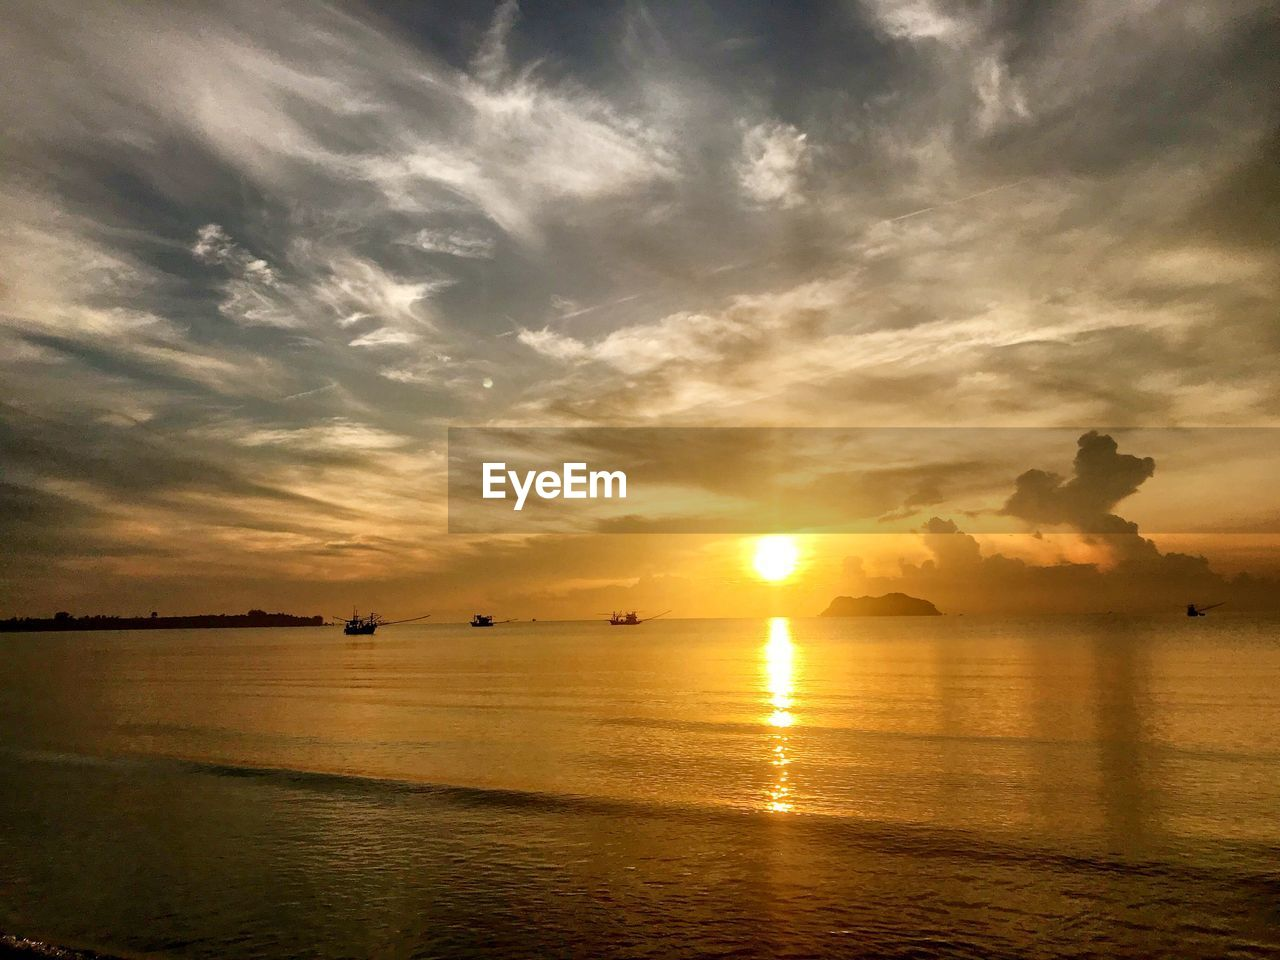 sunset, sky, water, cloud - sky, scenics - nature, beauty in nature, tranquil scene, tranquility, sea, orange color, sun, reflection, sunlight, idyllic, nature, waterfront, no people, silhouette, non-urban scene, outdoors